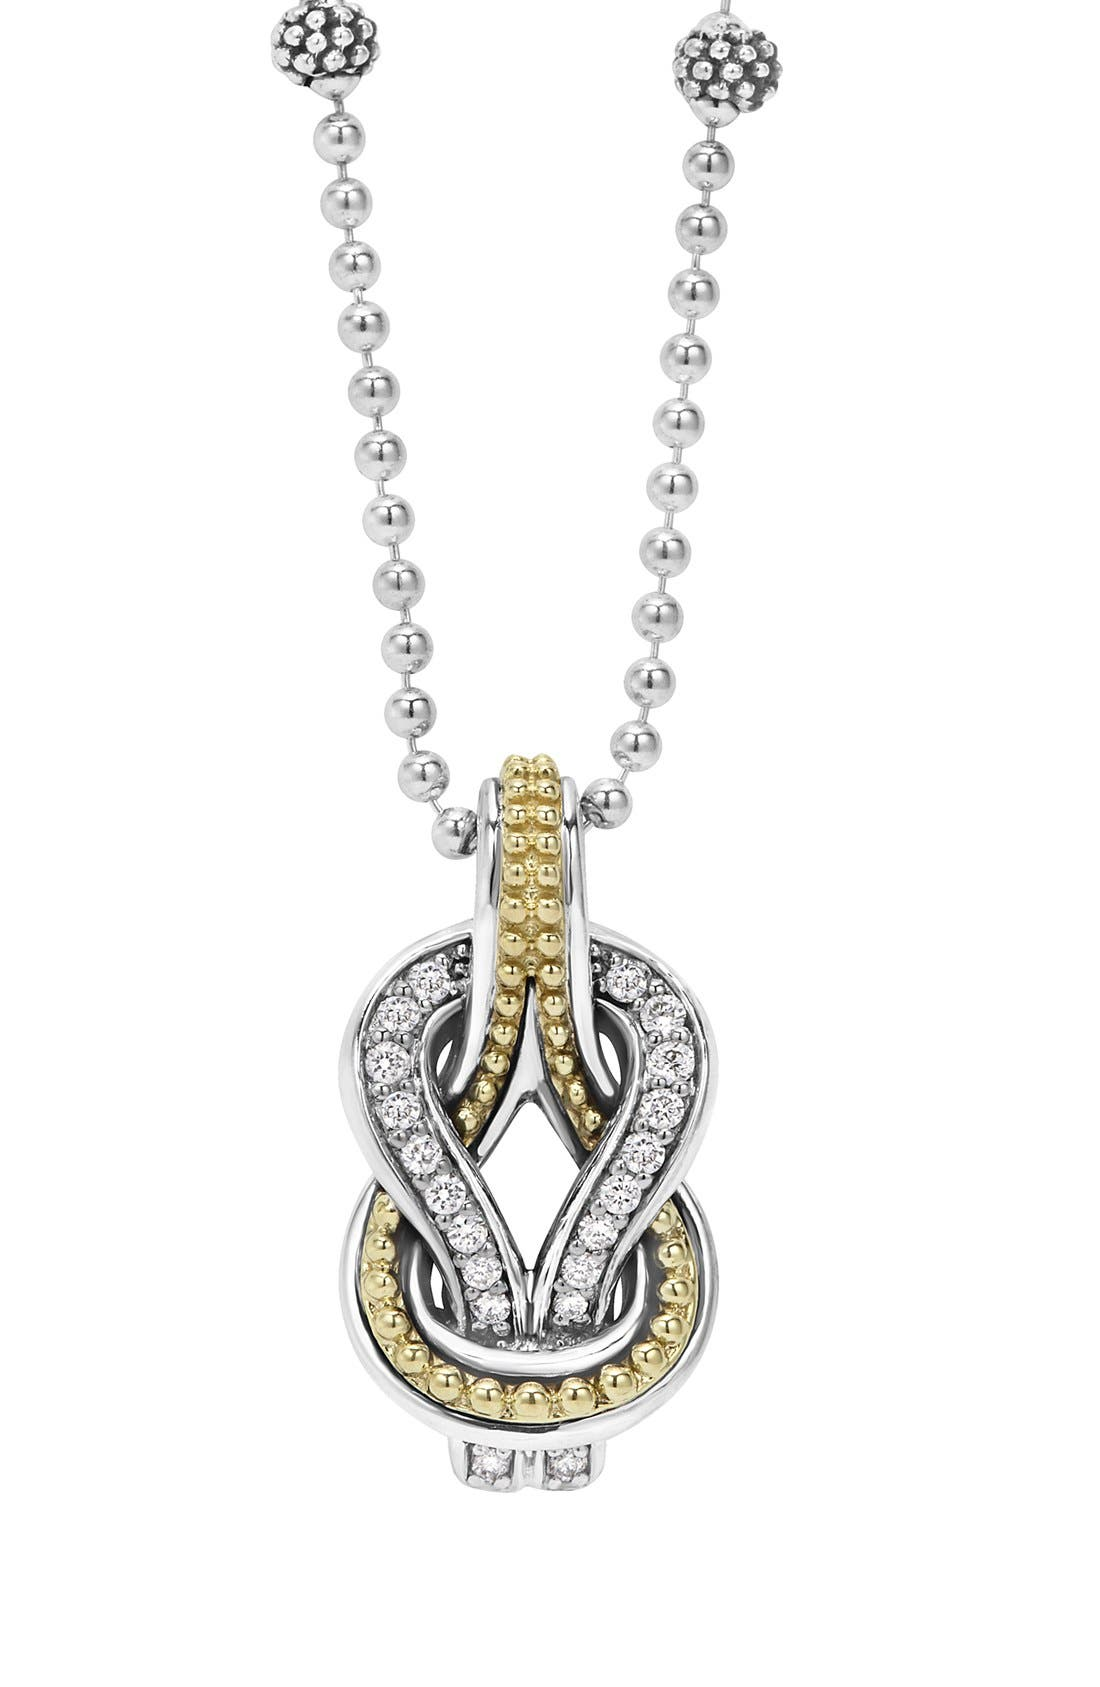 LAGOS 'Newport' Diamond Knot Pendant Necklace